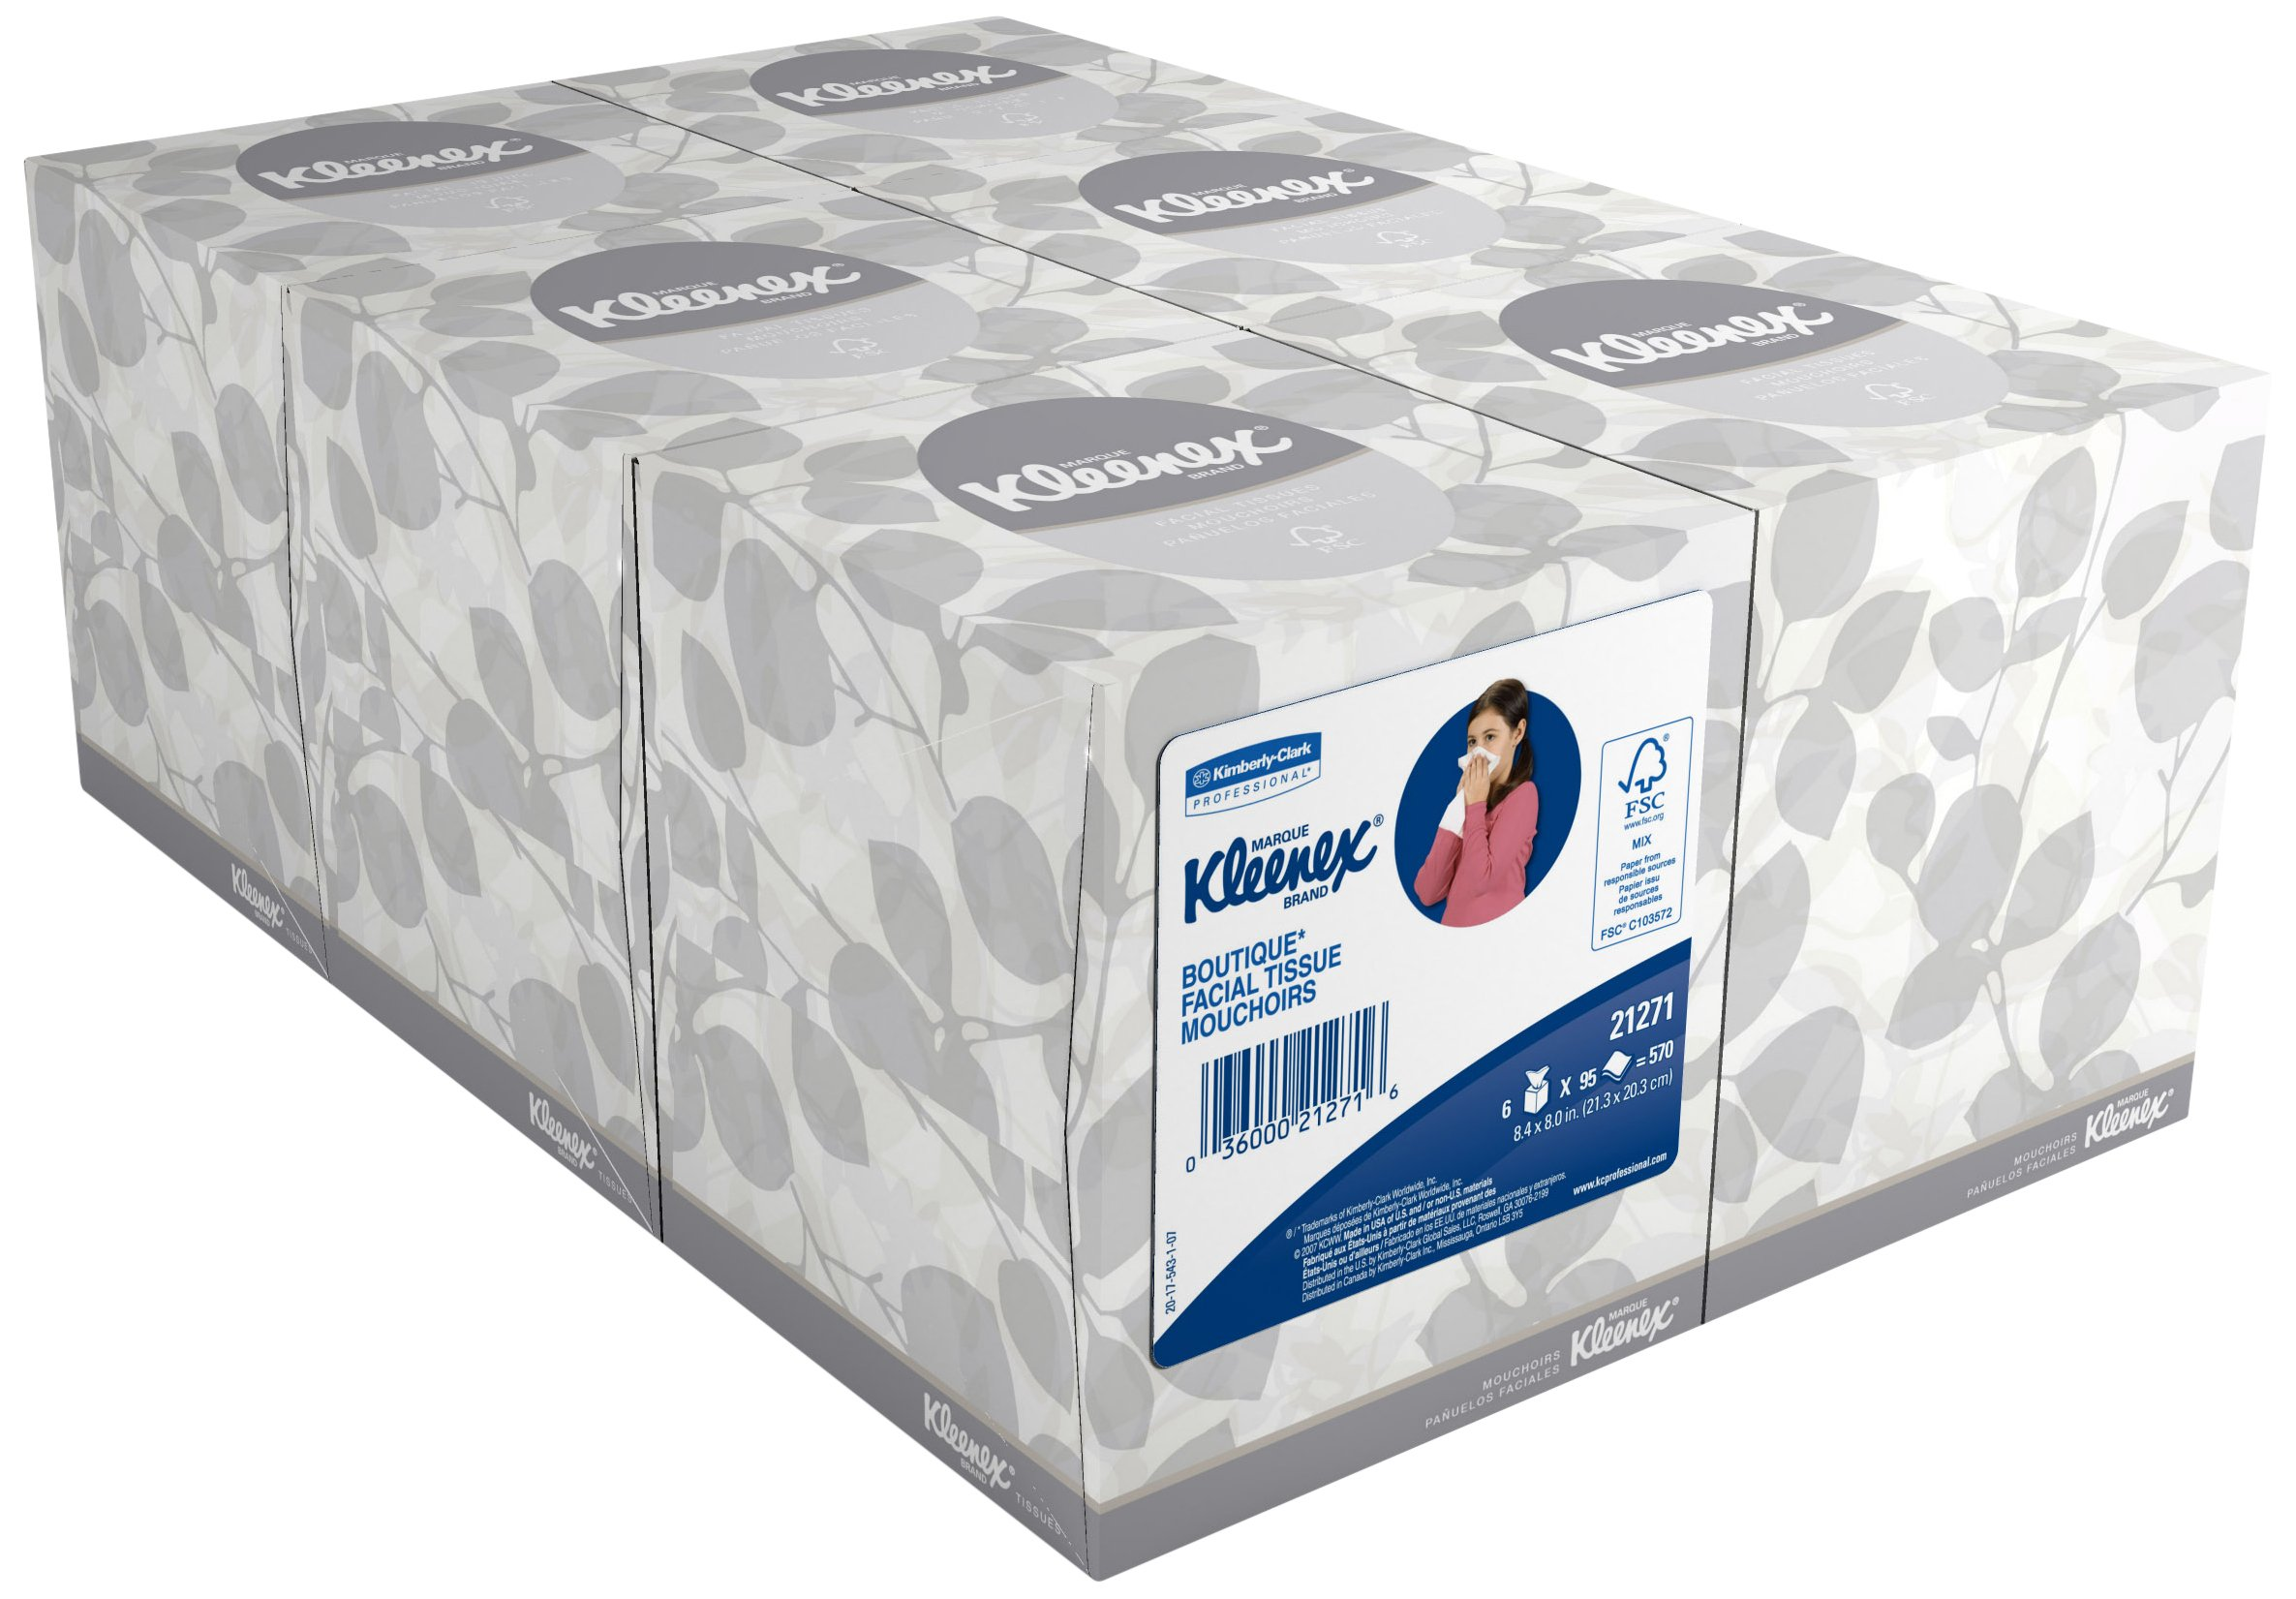 Kimberly-Clark 21271 Kleenex Boutique Facial Tissue Mouchoirs, 8.4'' Length x 8'' Width, White, 6 Boxes of 95 sheets (Pack of 570)